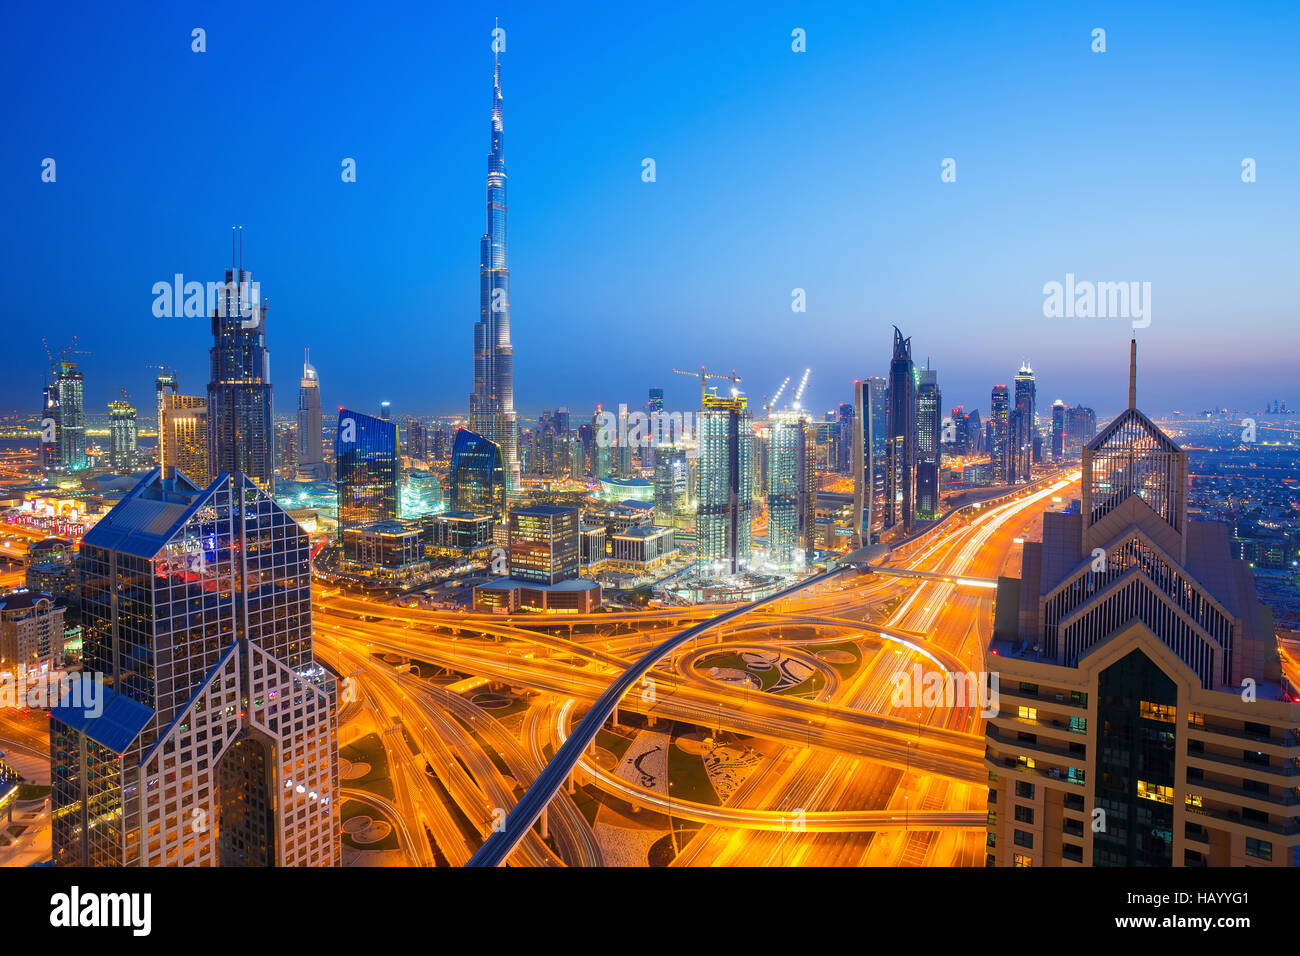 View on modern skyscrapers and busy evening highways in luxury Dubai city,Dubai,United Arab Emirates - Stock Image